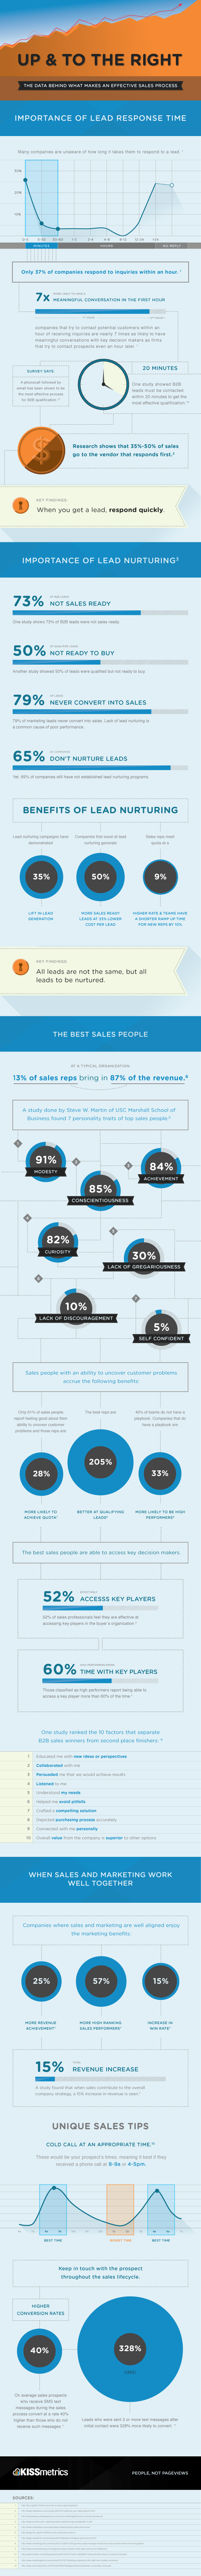 Infographic: How to improve your B2B prospecting